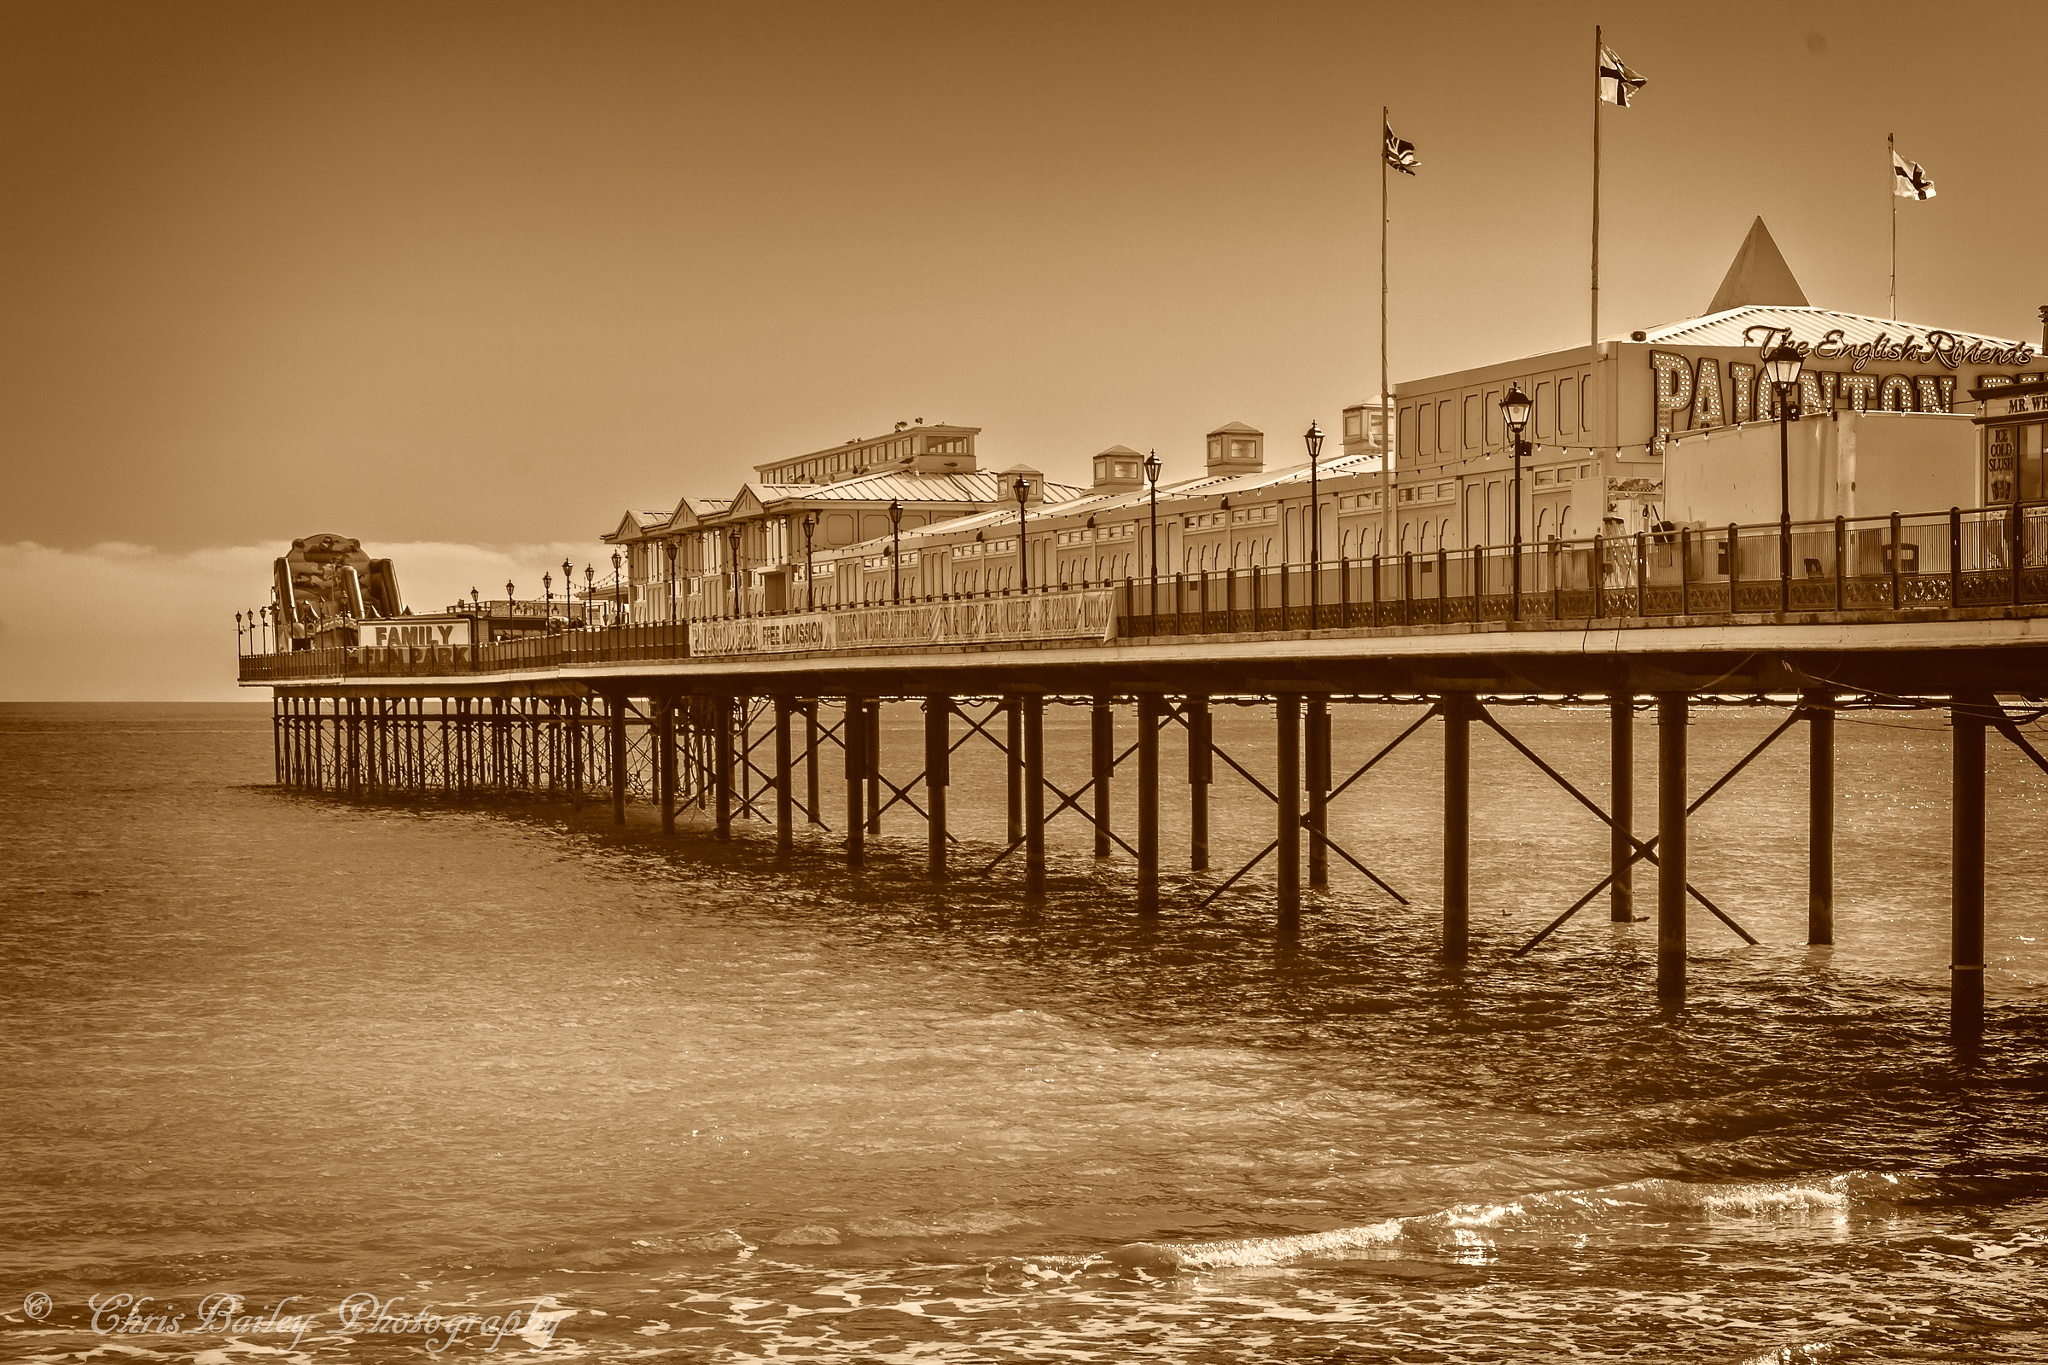 Paignton Pier. 02.2. 20160331 by Chris Bailey